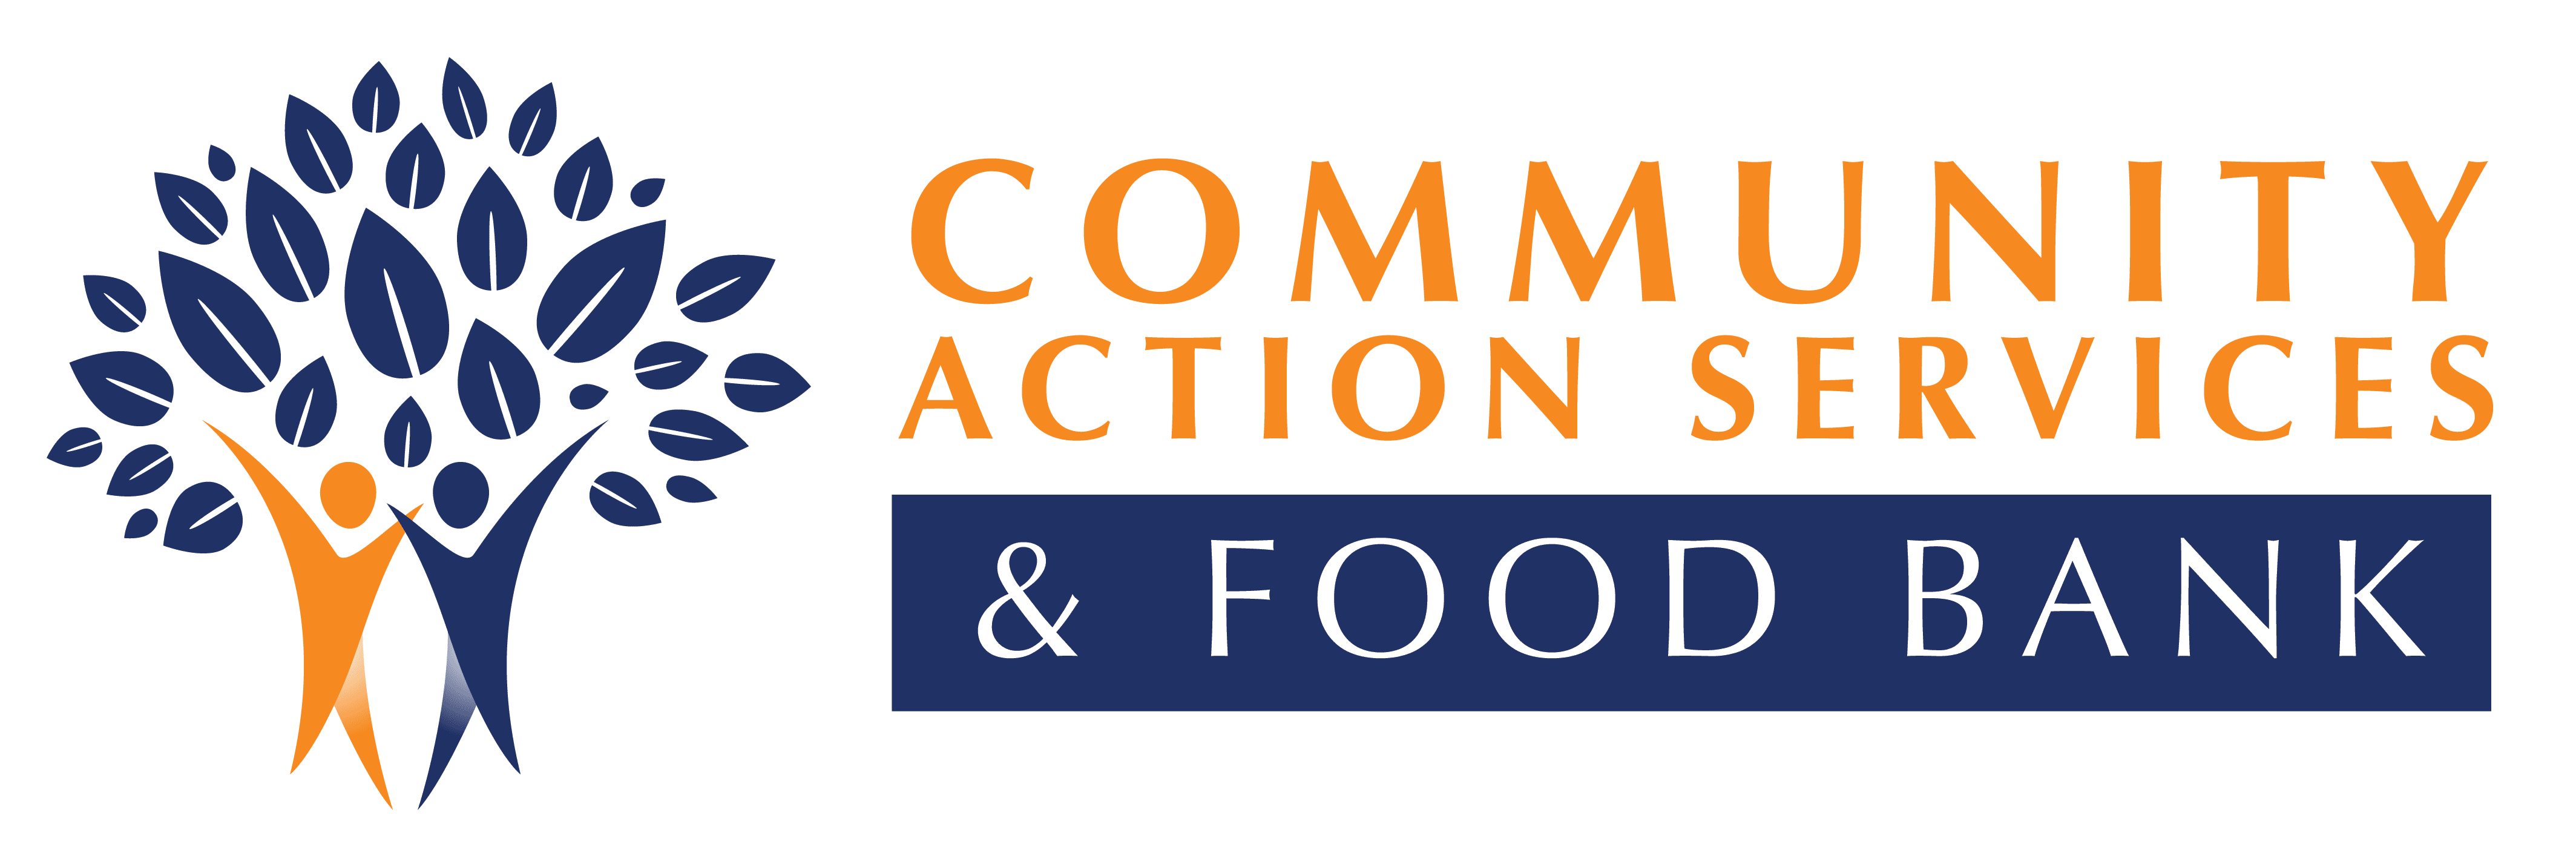 Community Action Services (CAS) and Provo